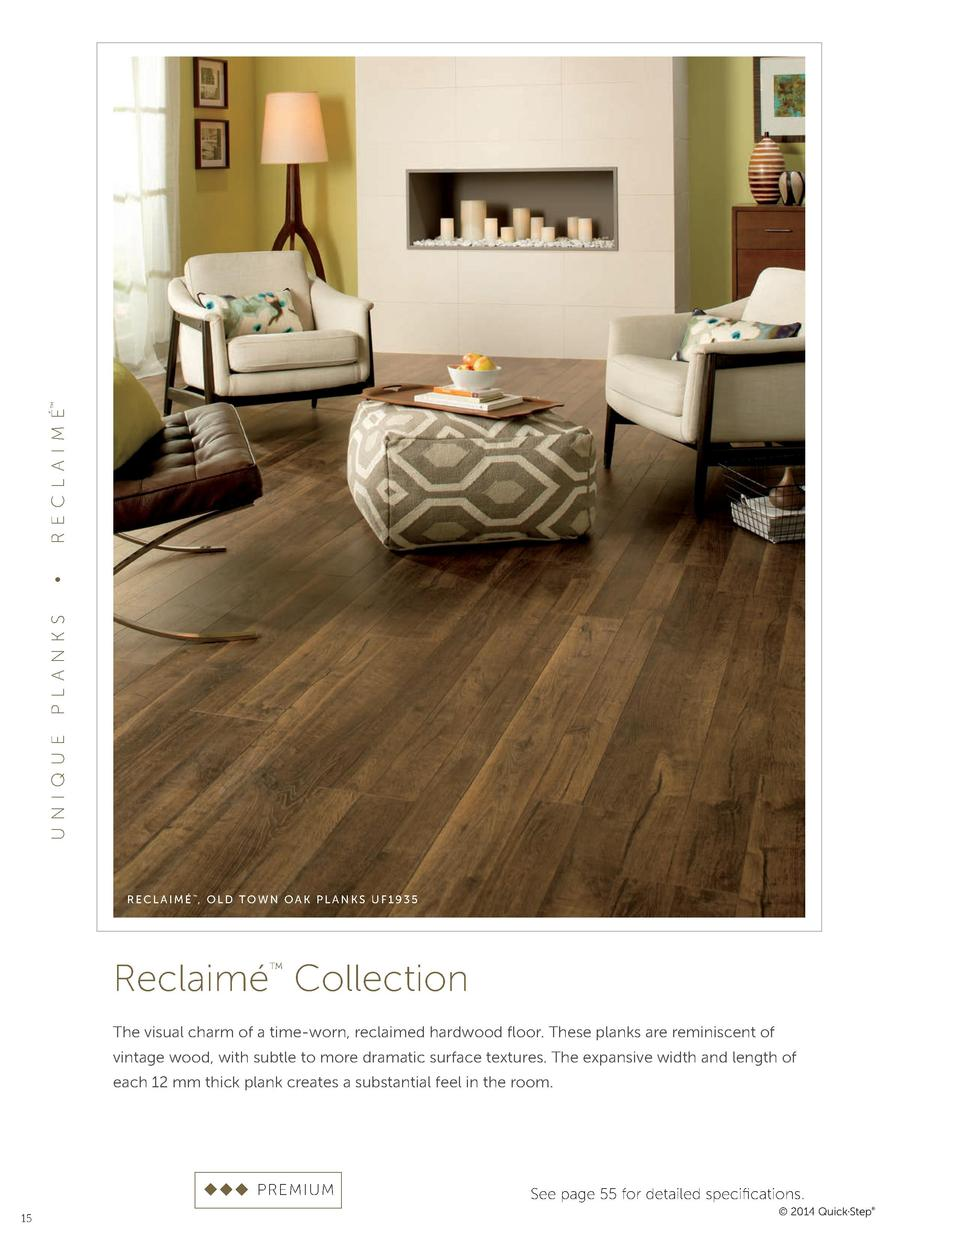 REC L A I M       P L A NKS UNI QUE  RECLAIM   , OLD TOWN OAK PLANKS UF1935      Reclaim   Collection      The visual...